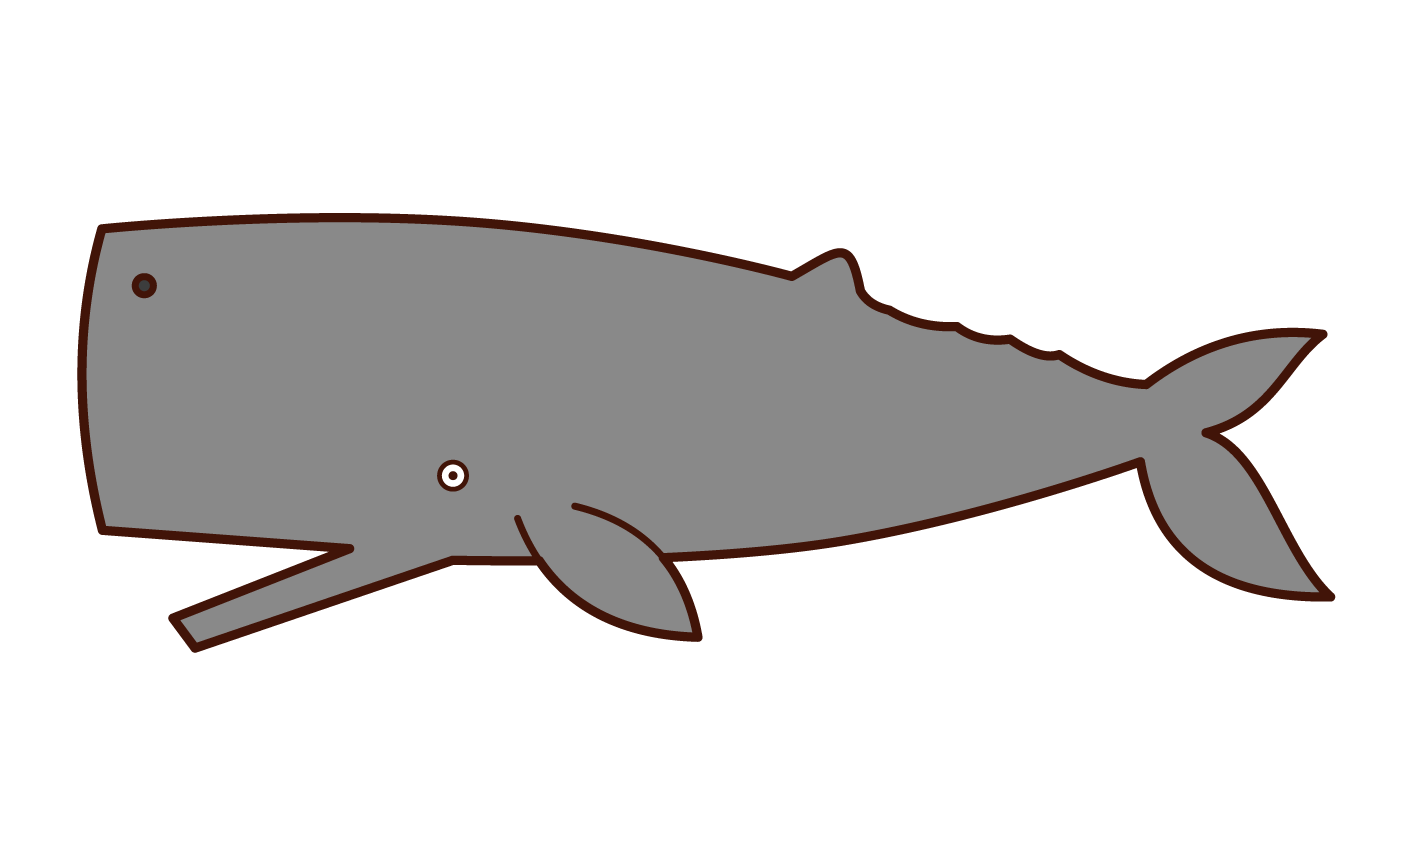 Illustration of the sperm whale